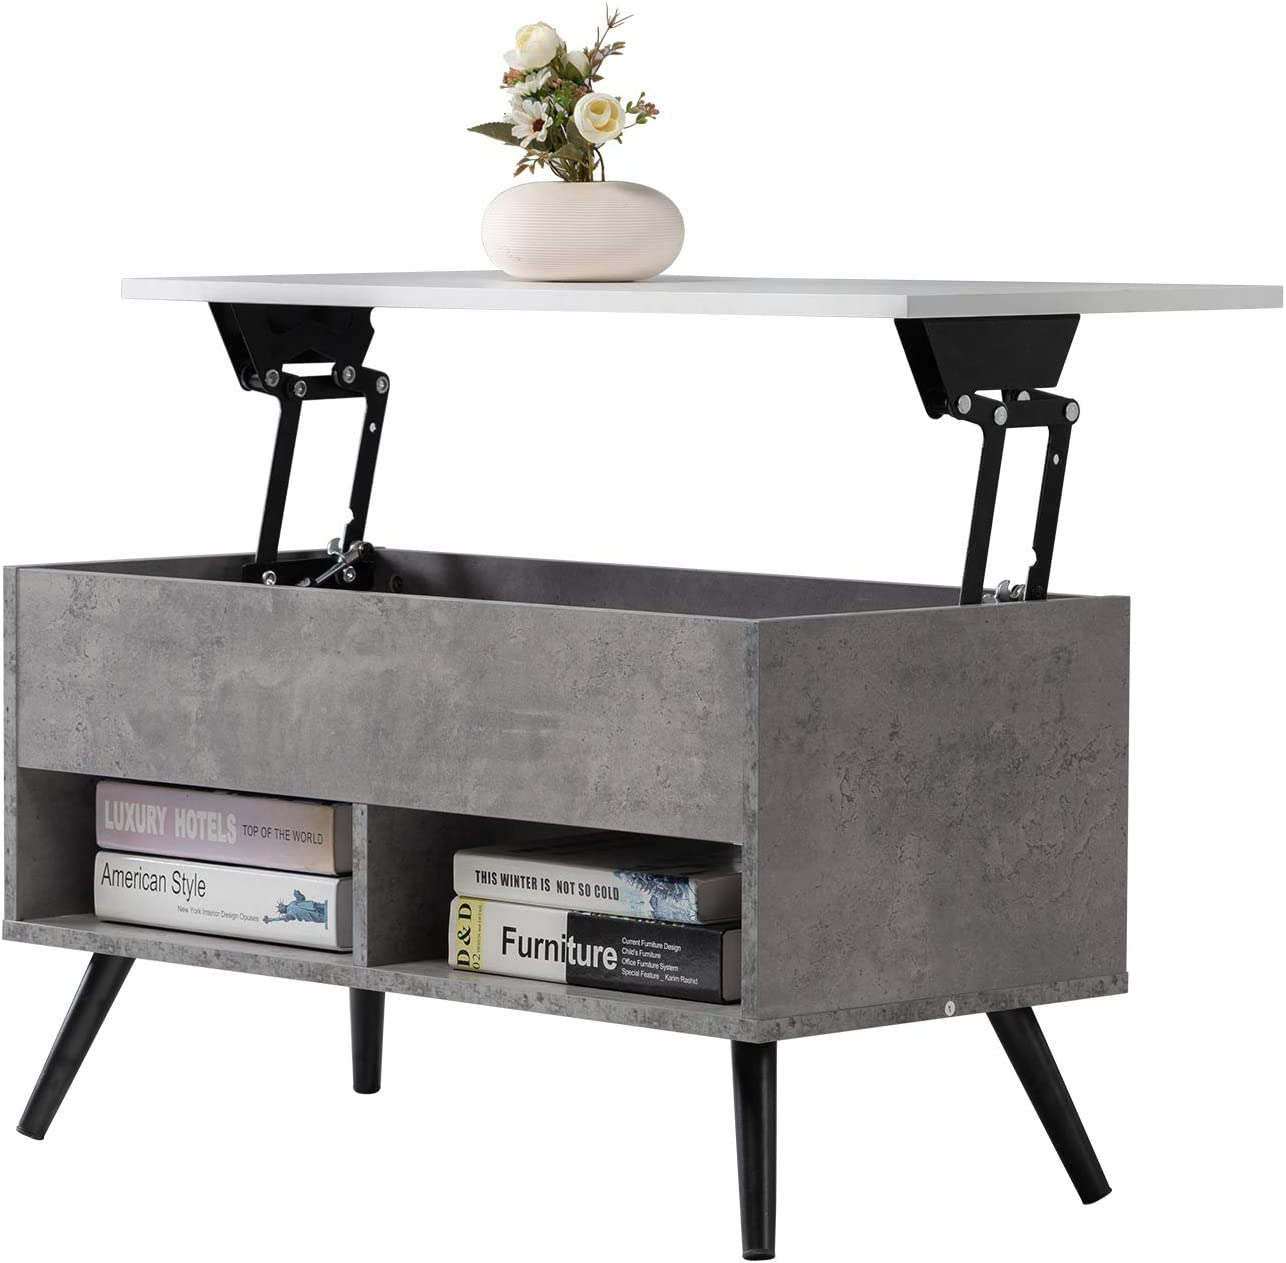 Mcmacros Lift Top Wood Coffee Table Sofa Tea Table With Storage For Living Room Grey Kitchen Dining